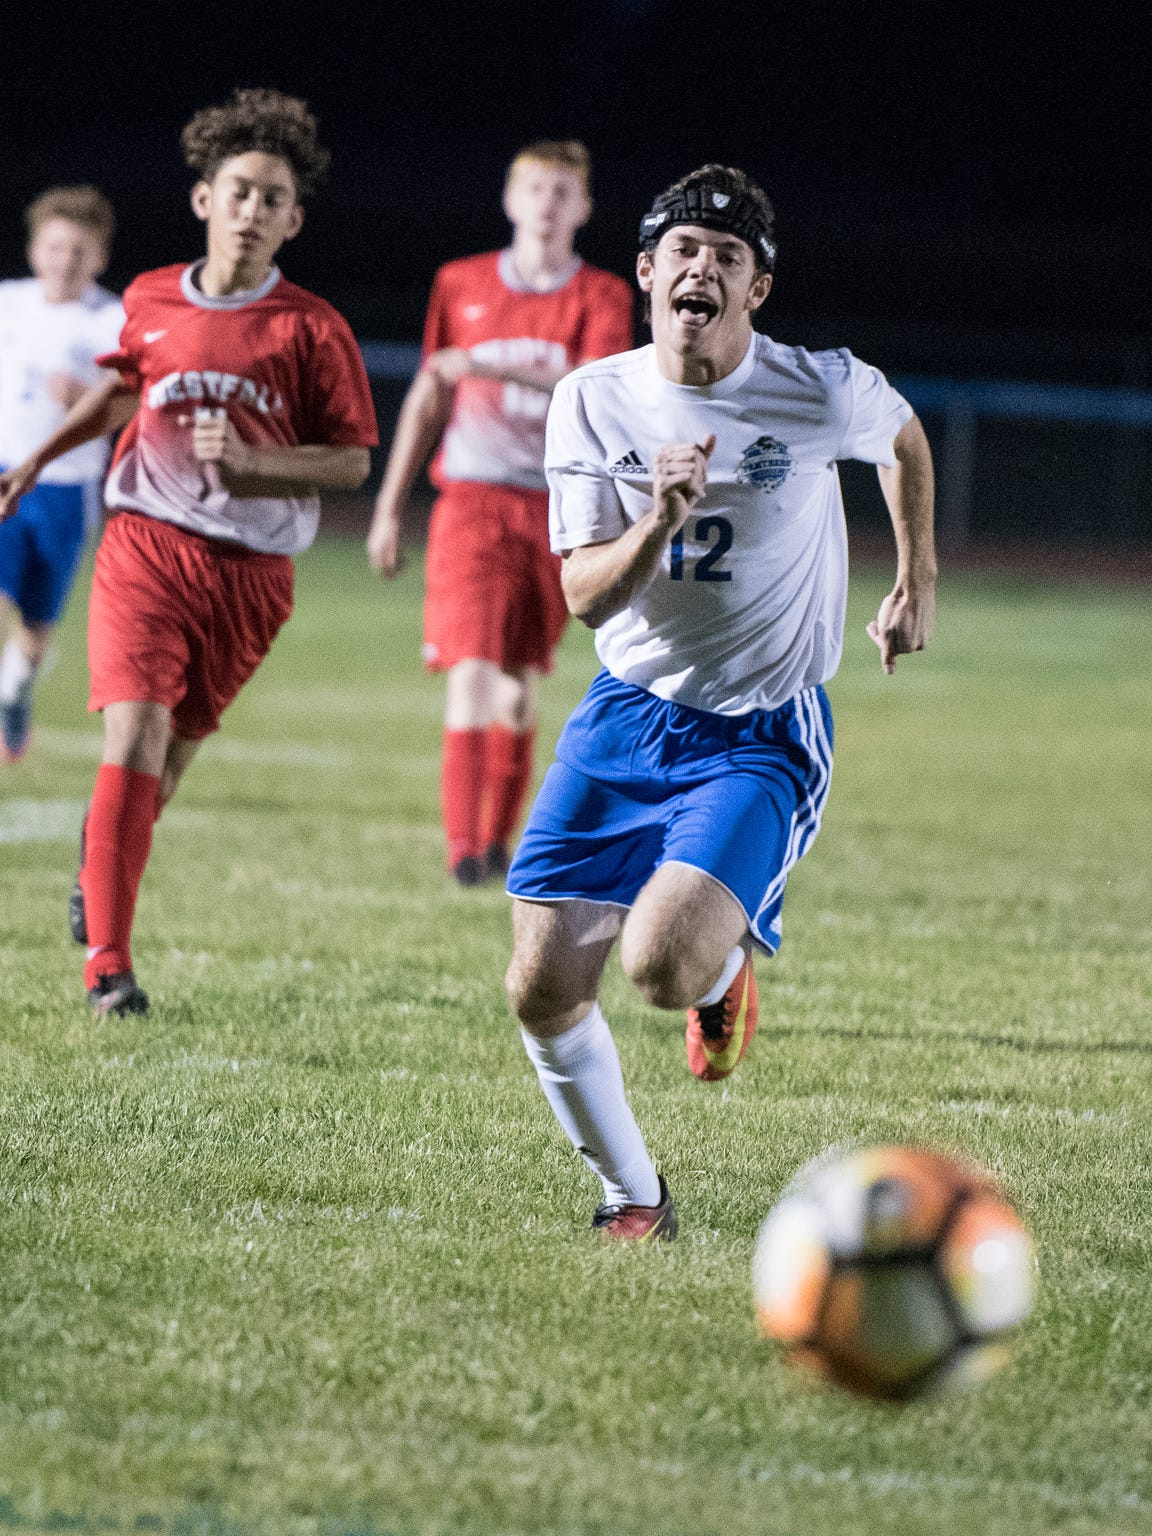 Lucas Meininger chases after a free ball during his